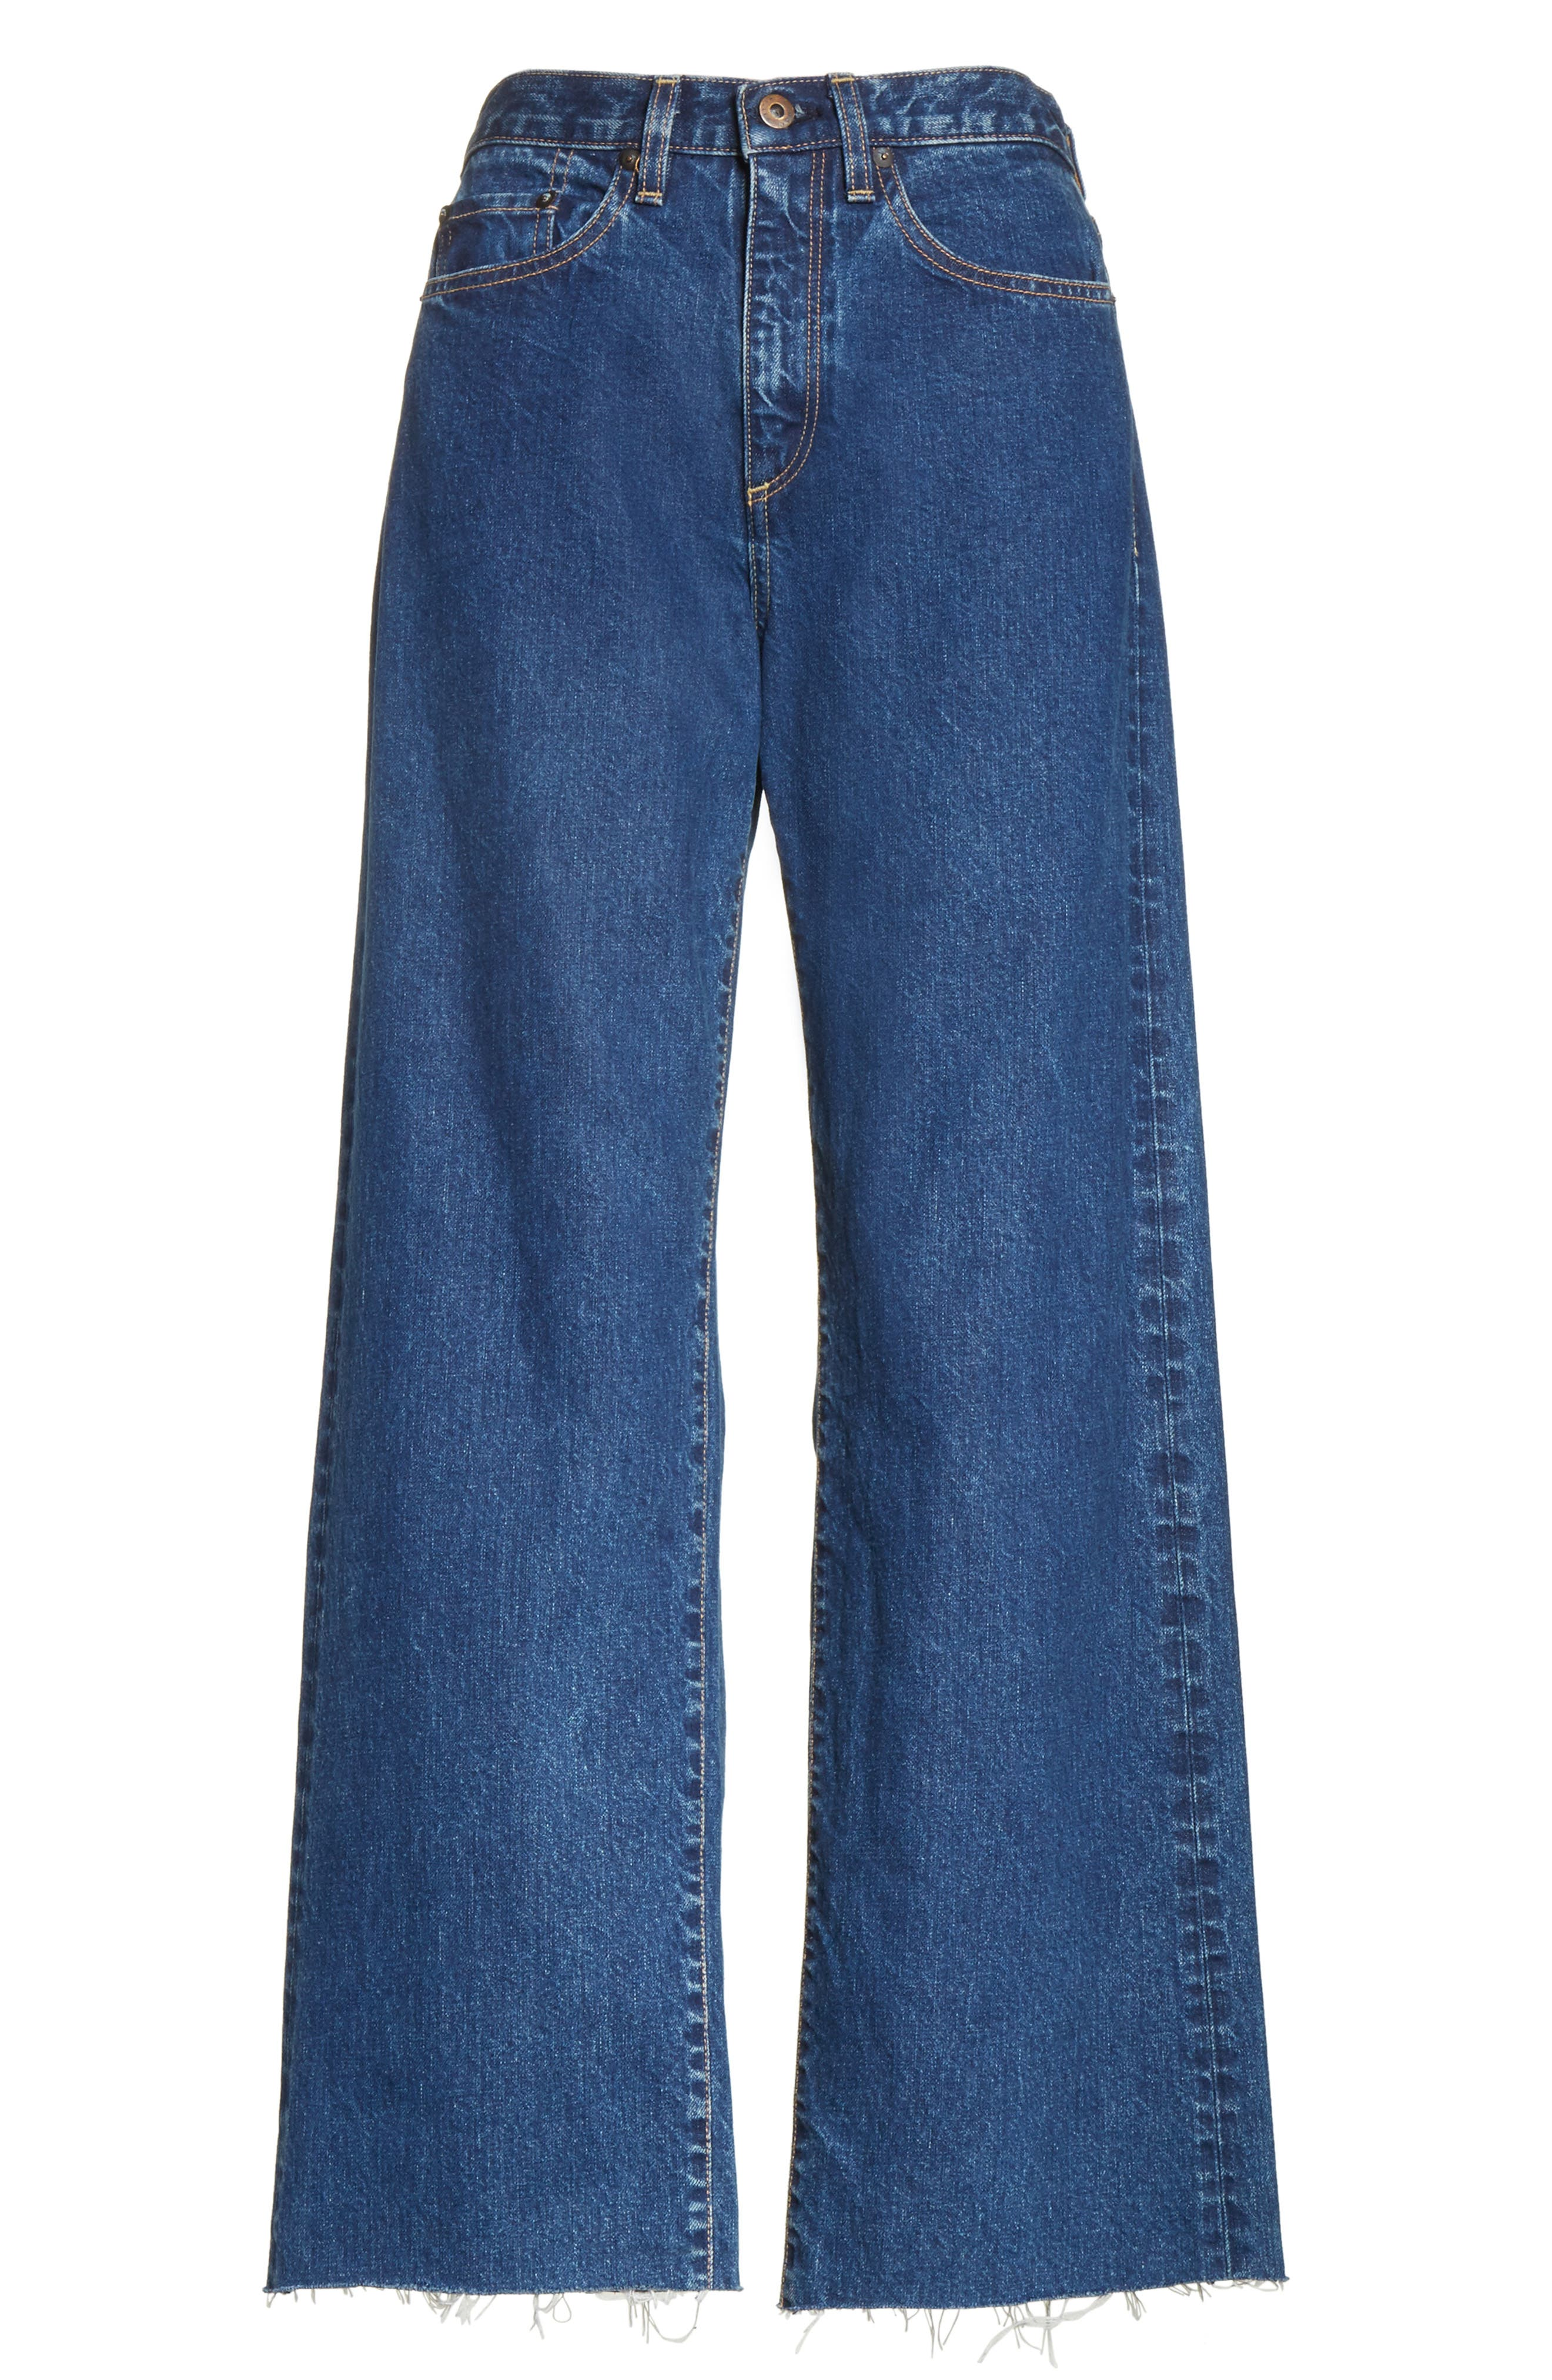 Toluca High Waist Wide Leg Jeans,                             Alternate thumbnail 8, color,                             Indigo